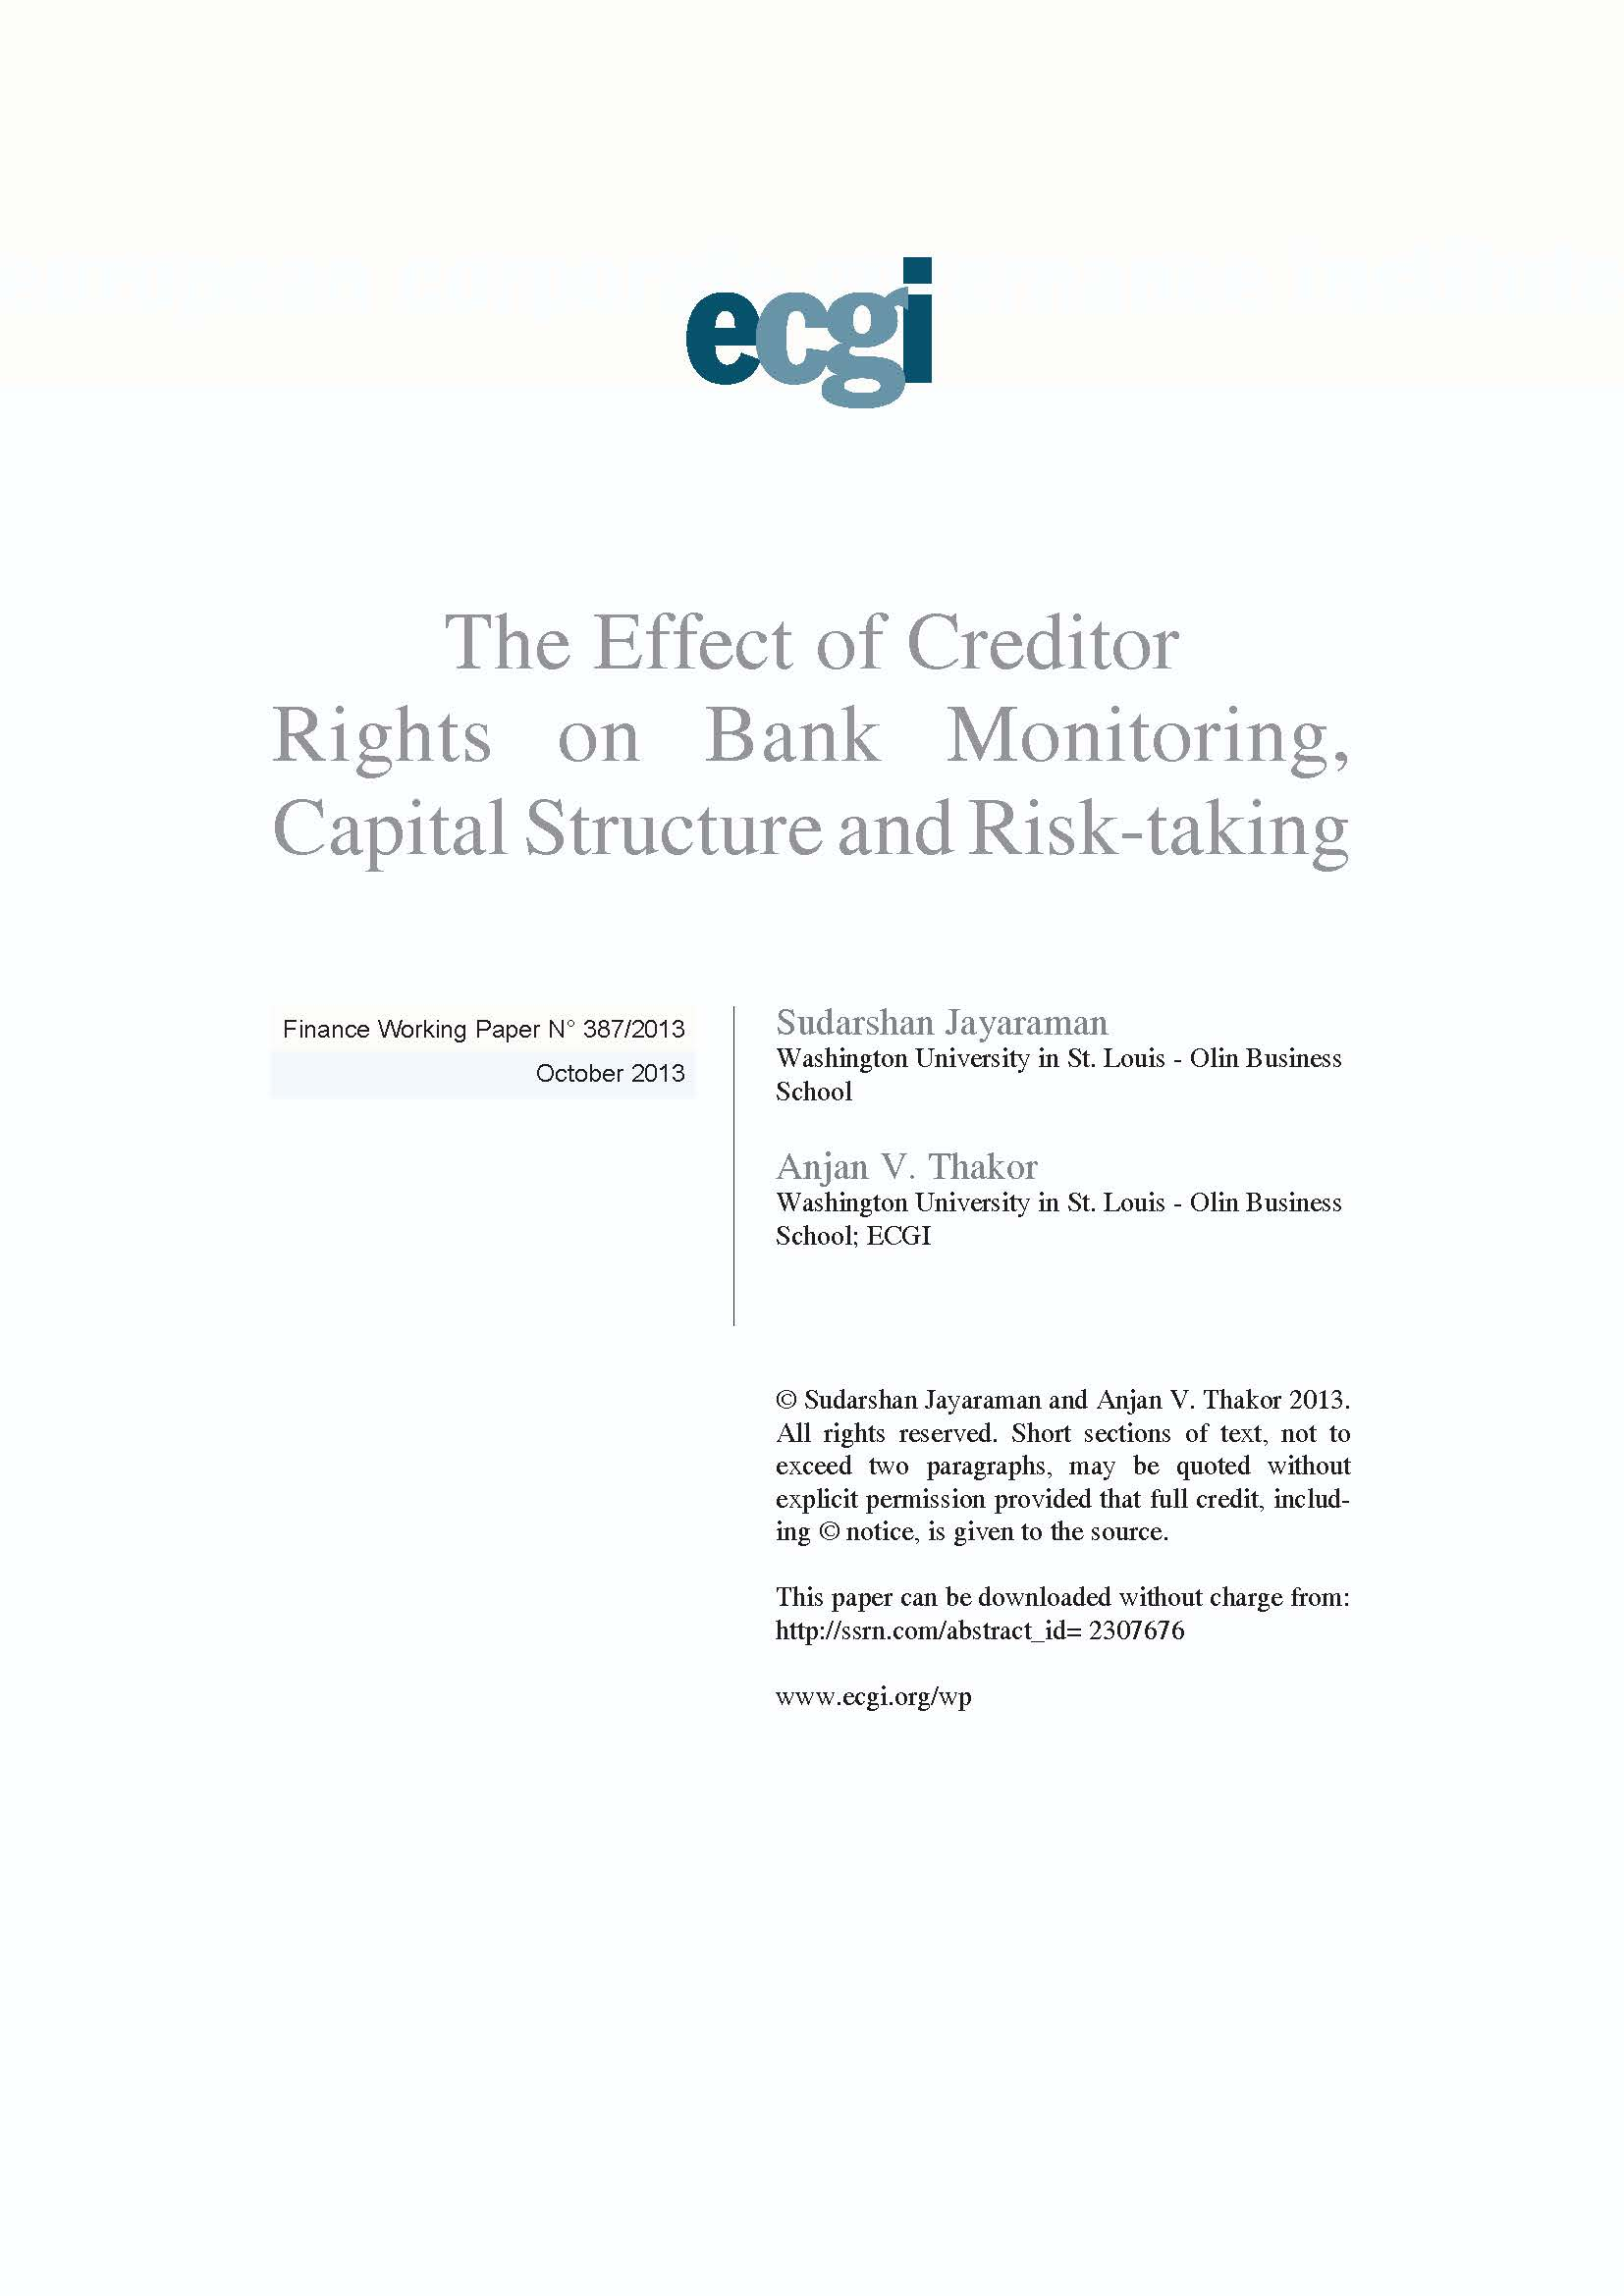 risk and capital structure View essay - e1–6- evaluating risk and capital structure from fi 575 at devry university, keller graduate school of management the result that the debt ratio increased from 399% to 437%.